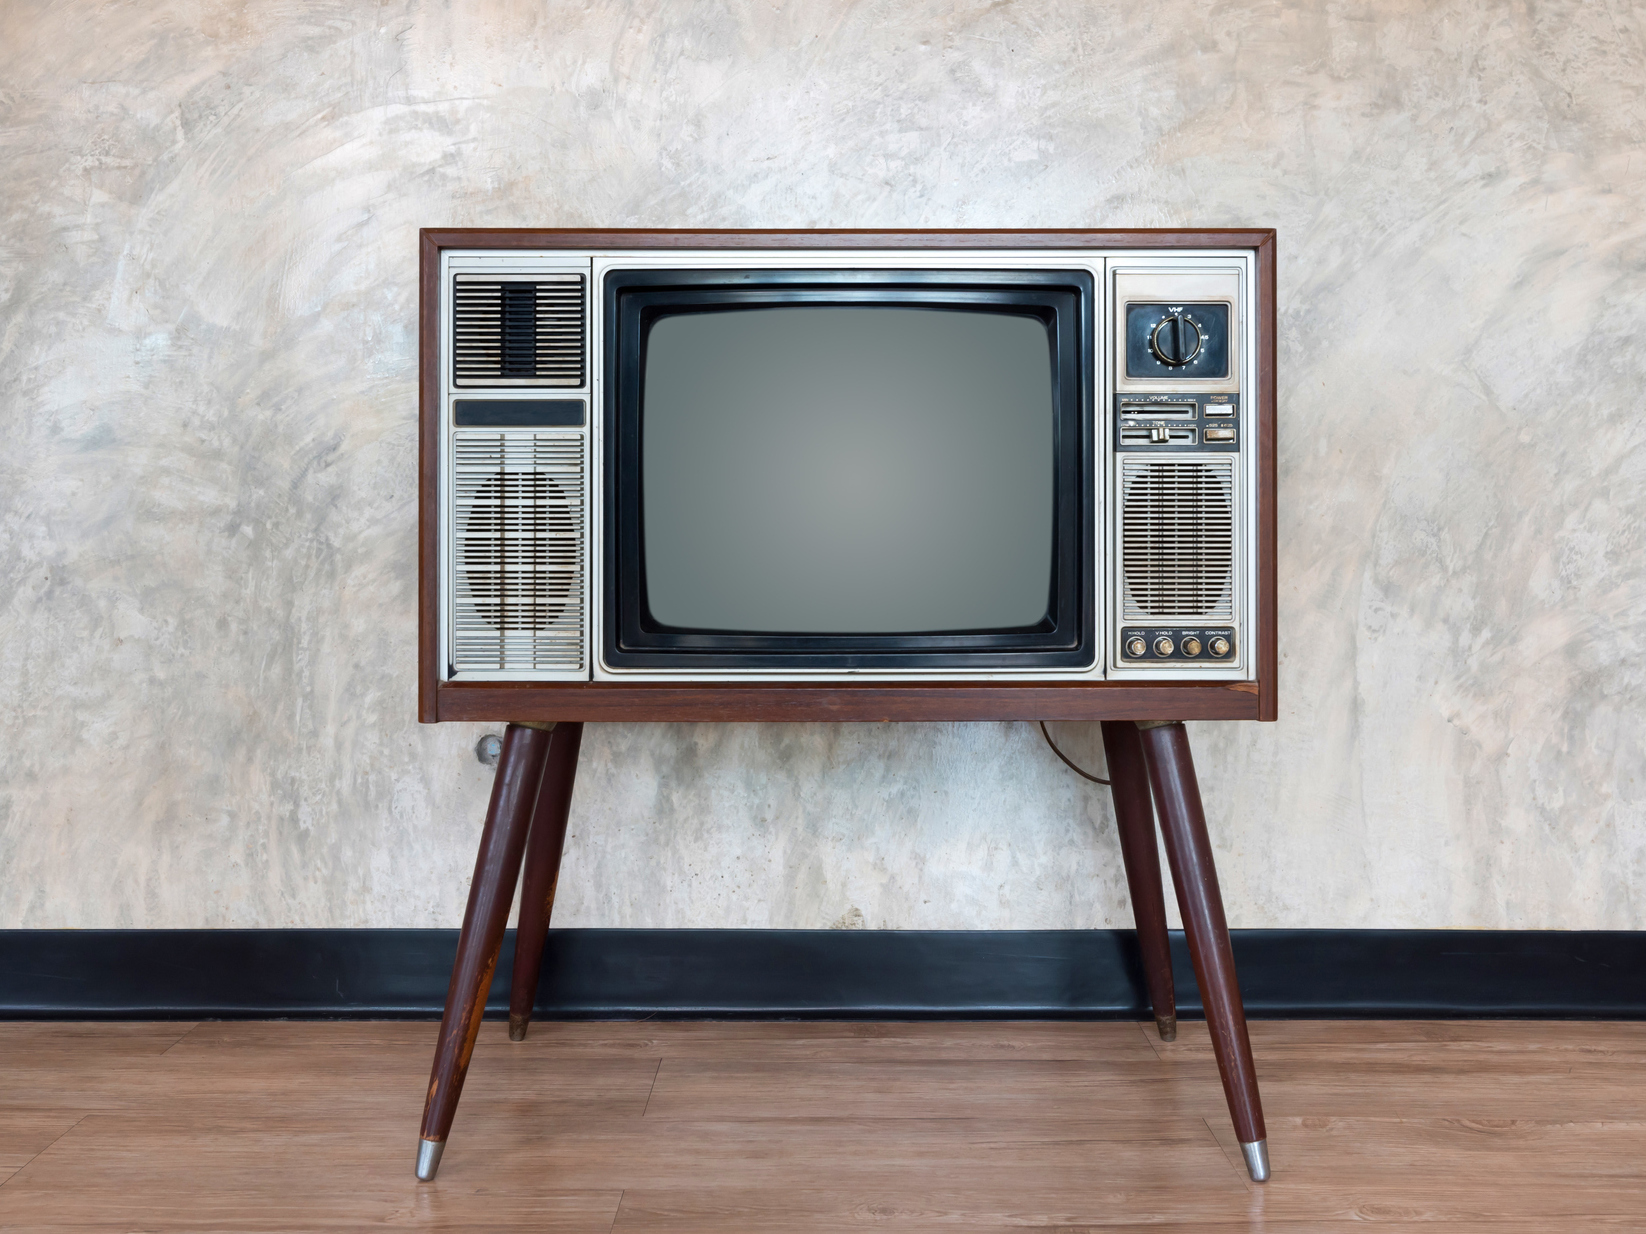 Badezimmer Set Nussbaum I Like To Watch Is A Passionate Brilliant Defense Of Tv Ncpr News